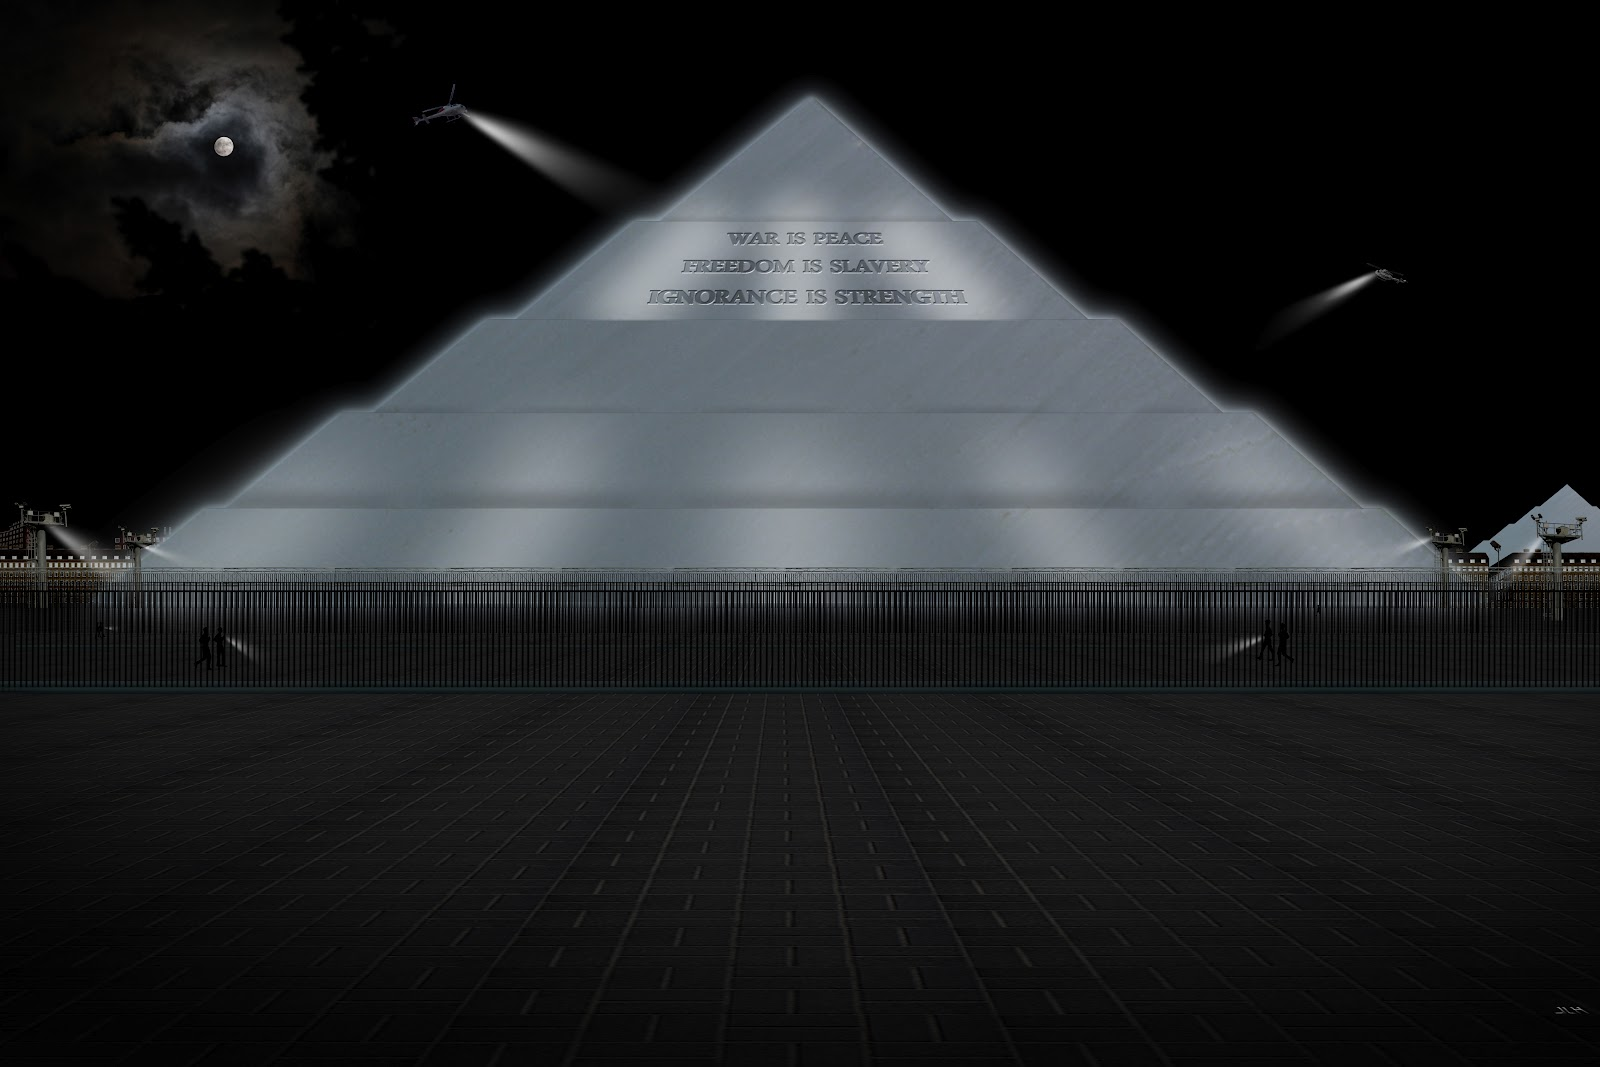 bd67b79d237 An enormous pyramidal structure of glittering white concrete rising 300  metres into the air